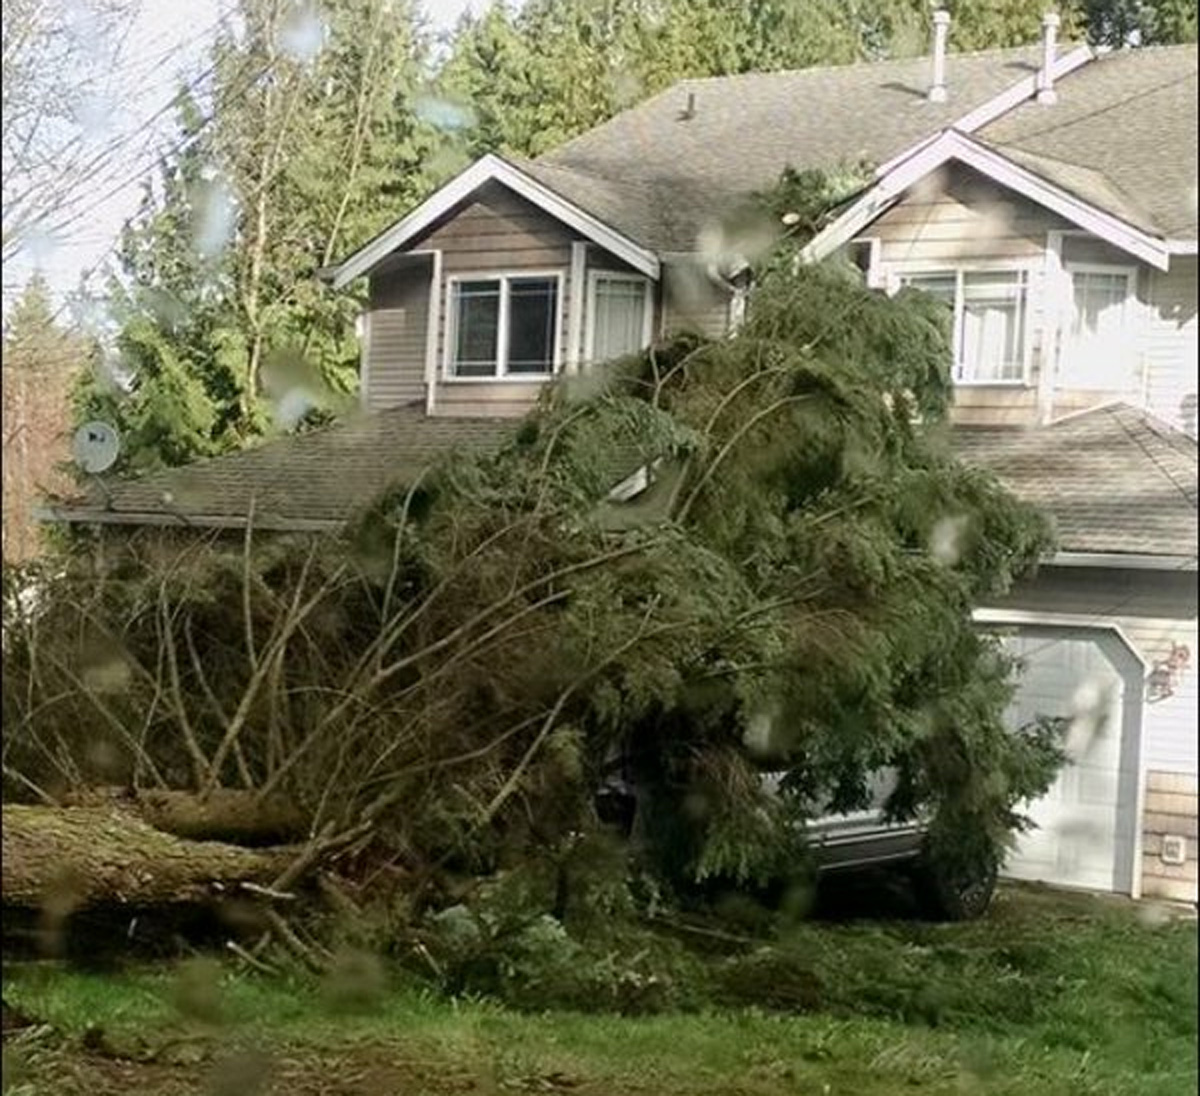 Gusty winds topple a tree in a Snohomish County neighborhood. (Photo courtesy of Melissa Tolle-Peacock)